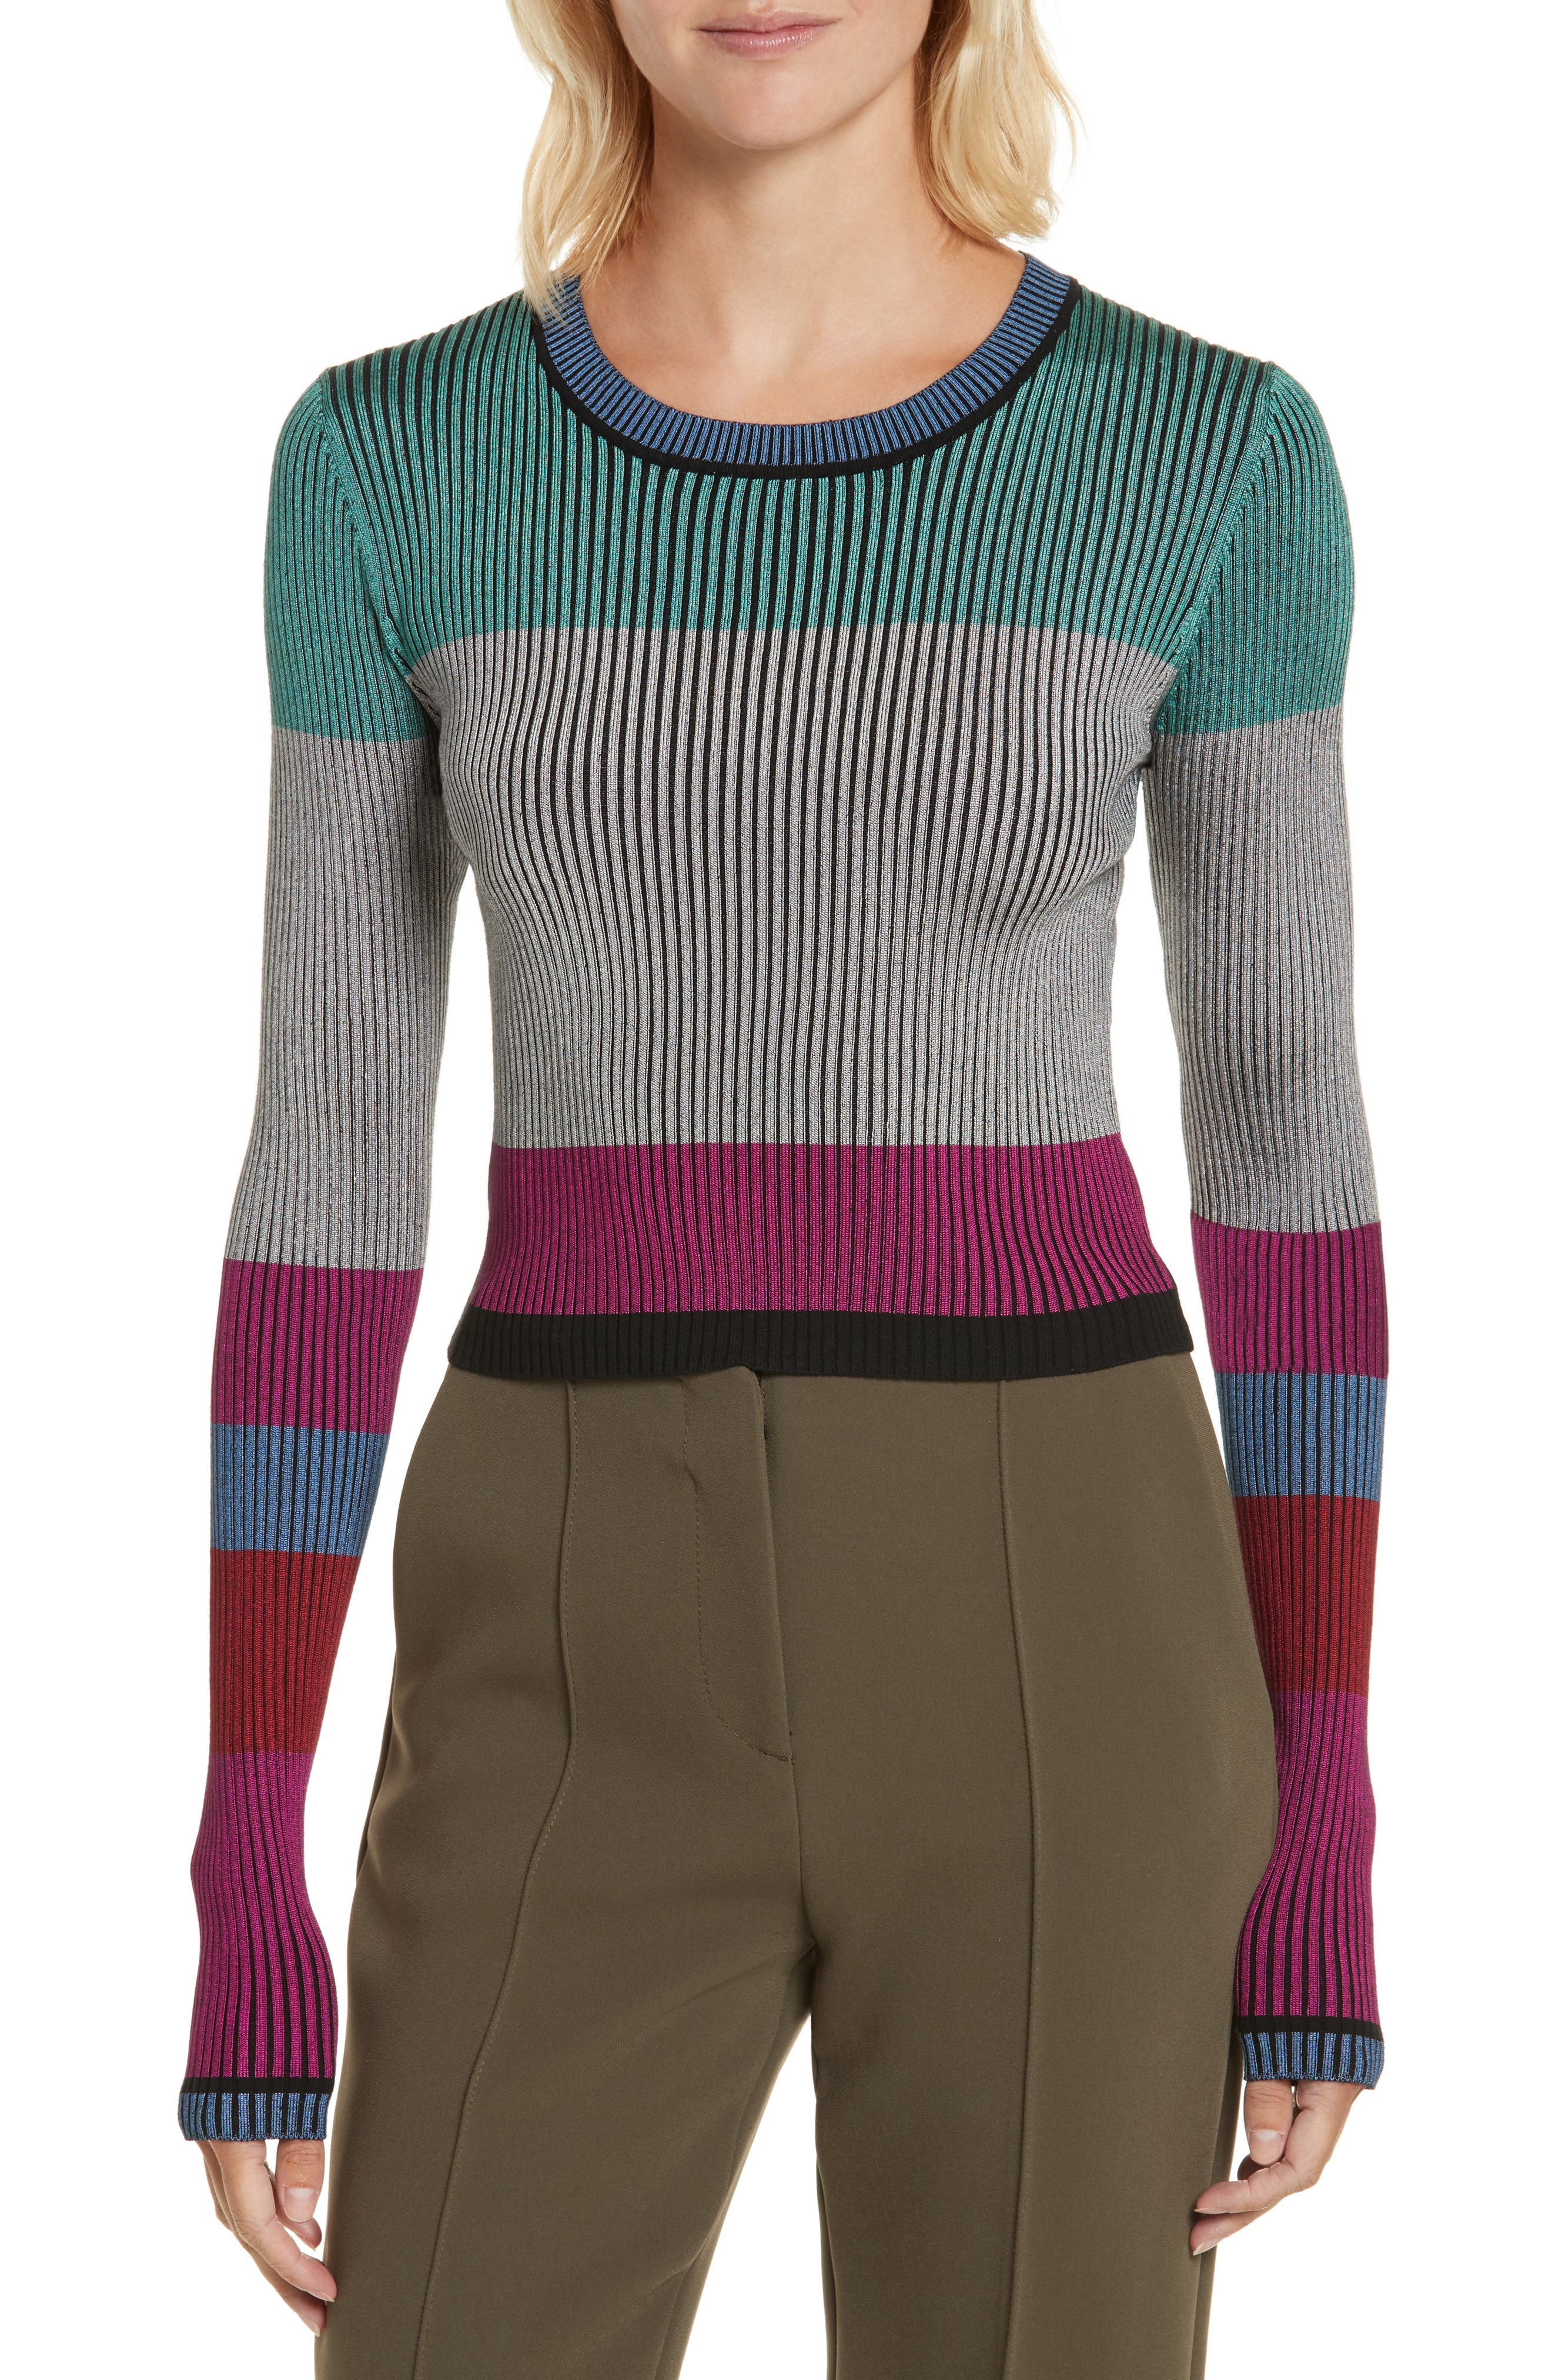 Diane von Furstenberg Cropped Plaited Pullover,                             Main thumbnail 1, color,                             Ribbon Pink Multi